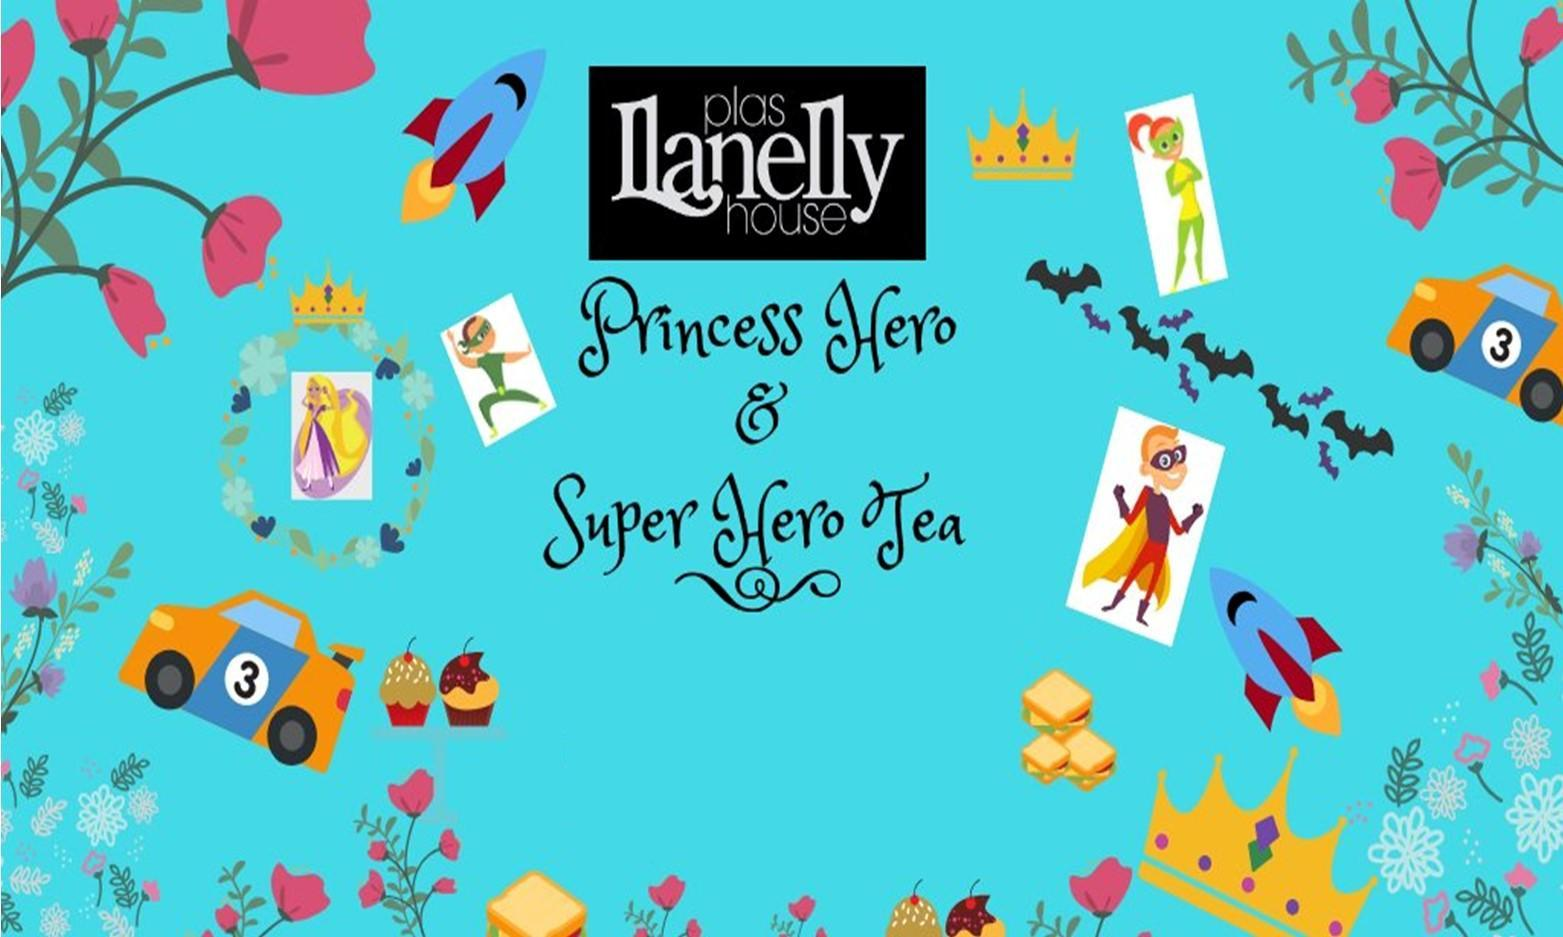 The Princess Hero and Super Hero Tea at Llanelly House